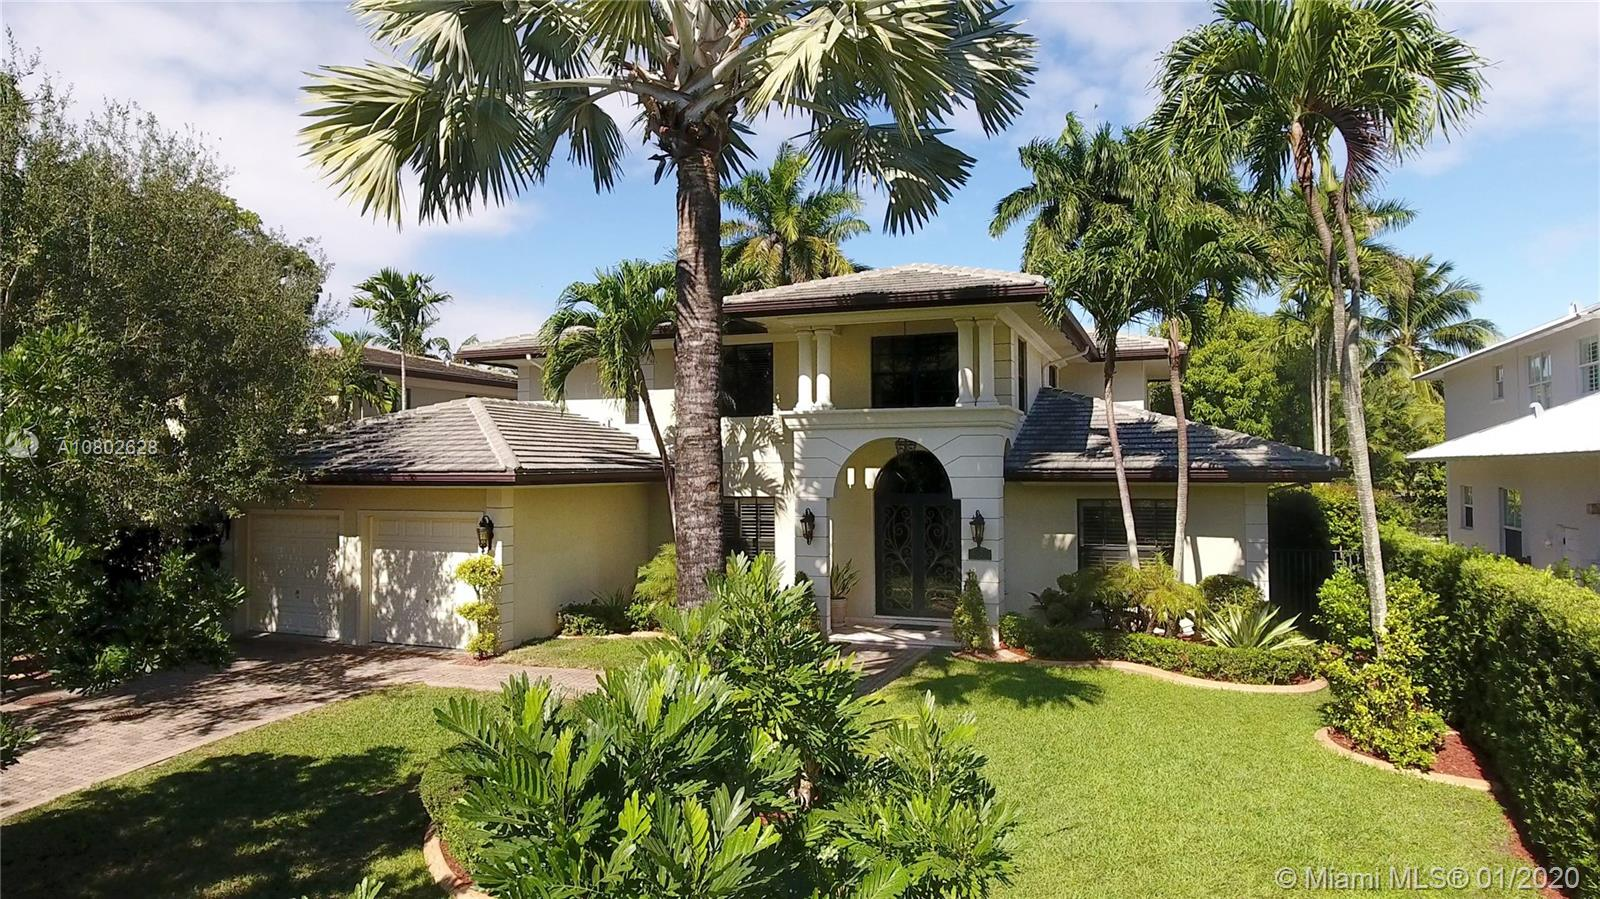 NEW PRICE!!! 2-story modern villa on quiet st in S. Miami. Double iron/glass door walks you into the foyer, formal living rm to the right & formal dining rm to the left leading to the family rm & spacious eat-in kitchen w/SS appliances & granite counters. 1 bedrm w/bath & office that can be converted to a bedrm. Adjacent to the kitchen, there are: butler's pantry, walk-in pantry, laundry & staff quarters. From the family rm, 2 french doors open to the covered terrace & pool area, w/high palms & space for entertainment. 2-car garage. On 2nd floor, the ample landing takes you to the main suite w/2 walk-in closets & beautiful bathrm with 2 vanities, shower & jetted tub. 1 en-suite bedrm & 2+bedrms w/ jack-n-jill bath. All impact doors/windows, marble throughout & wood flrs in 2nd flr bedrms.